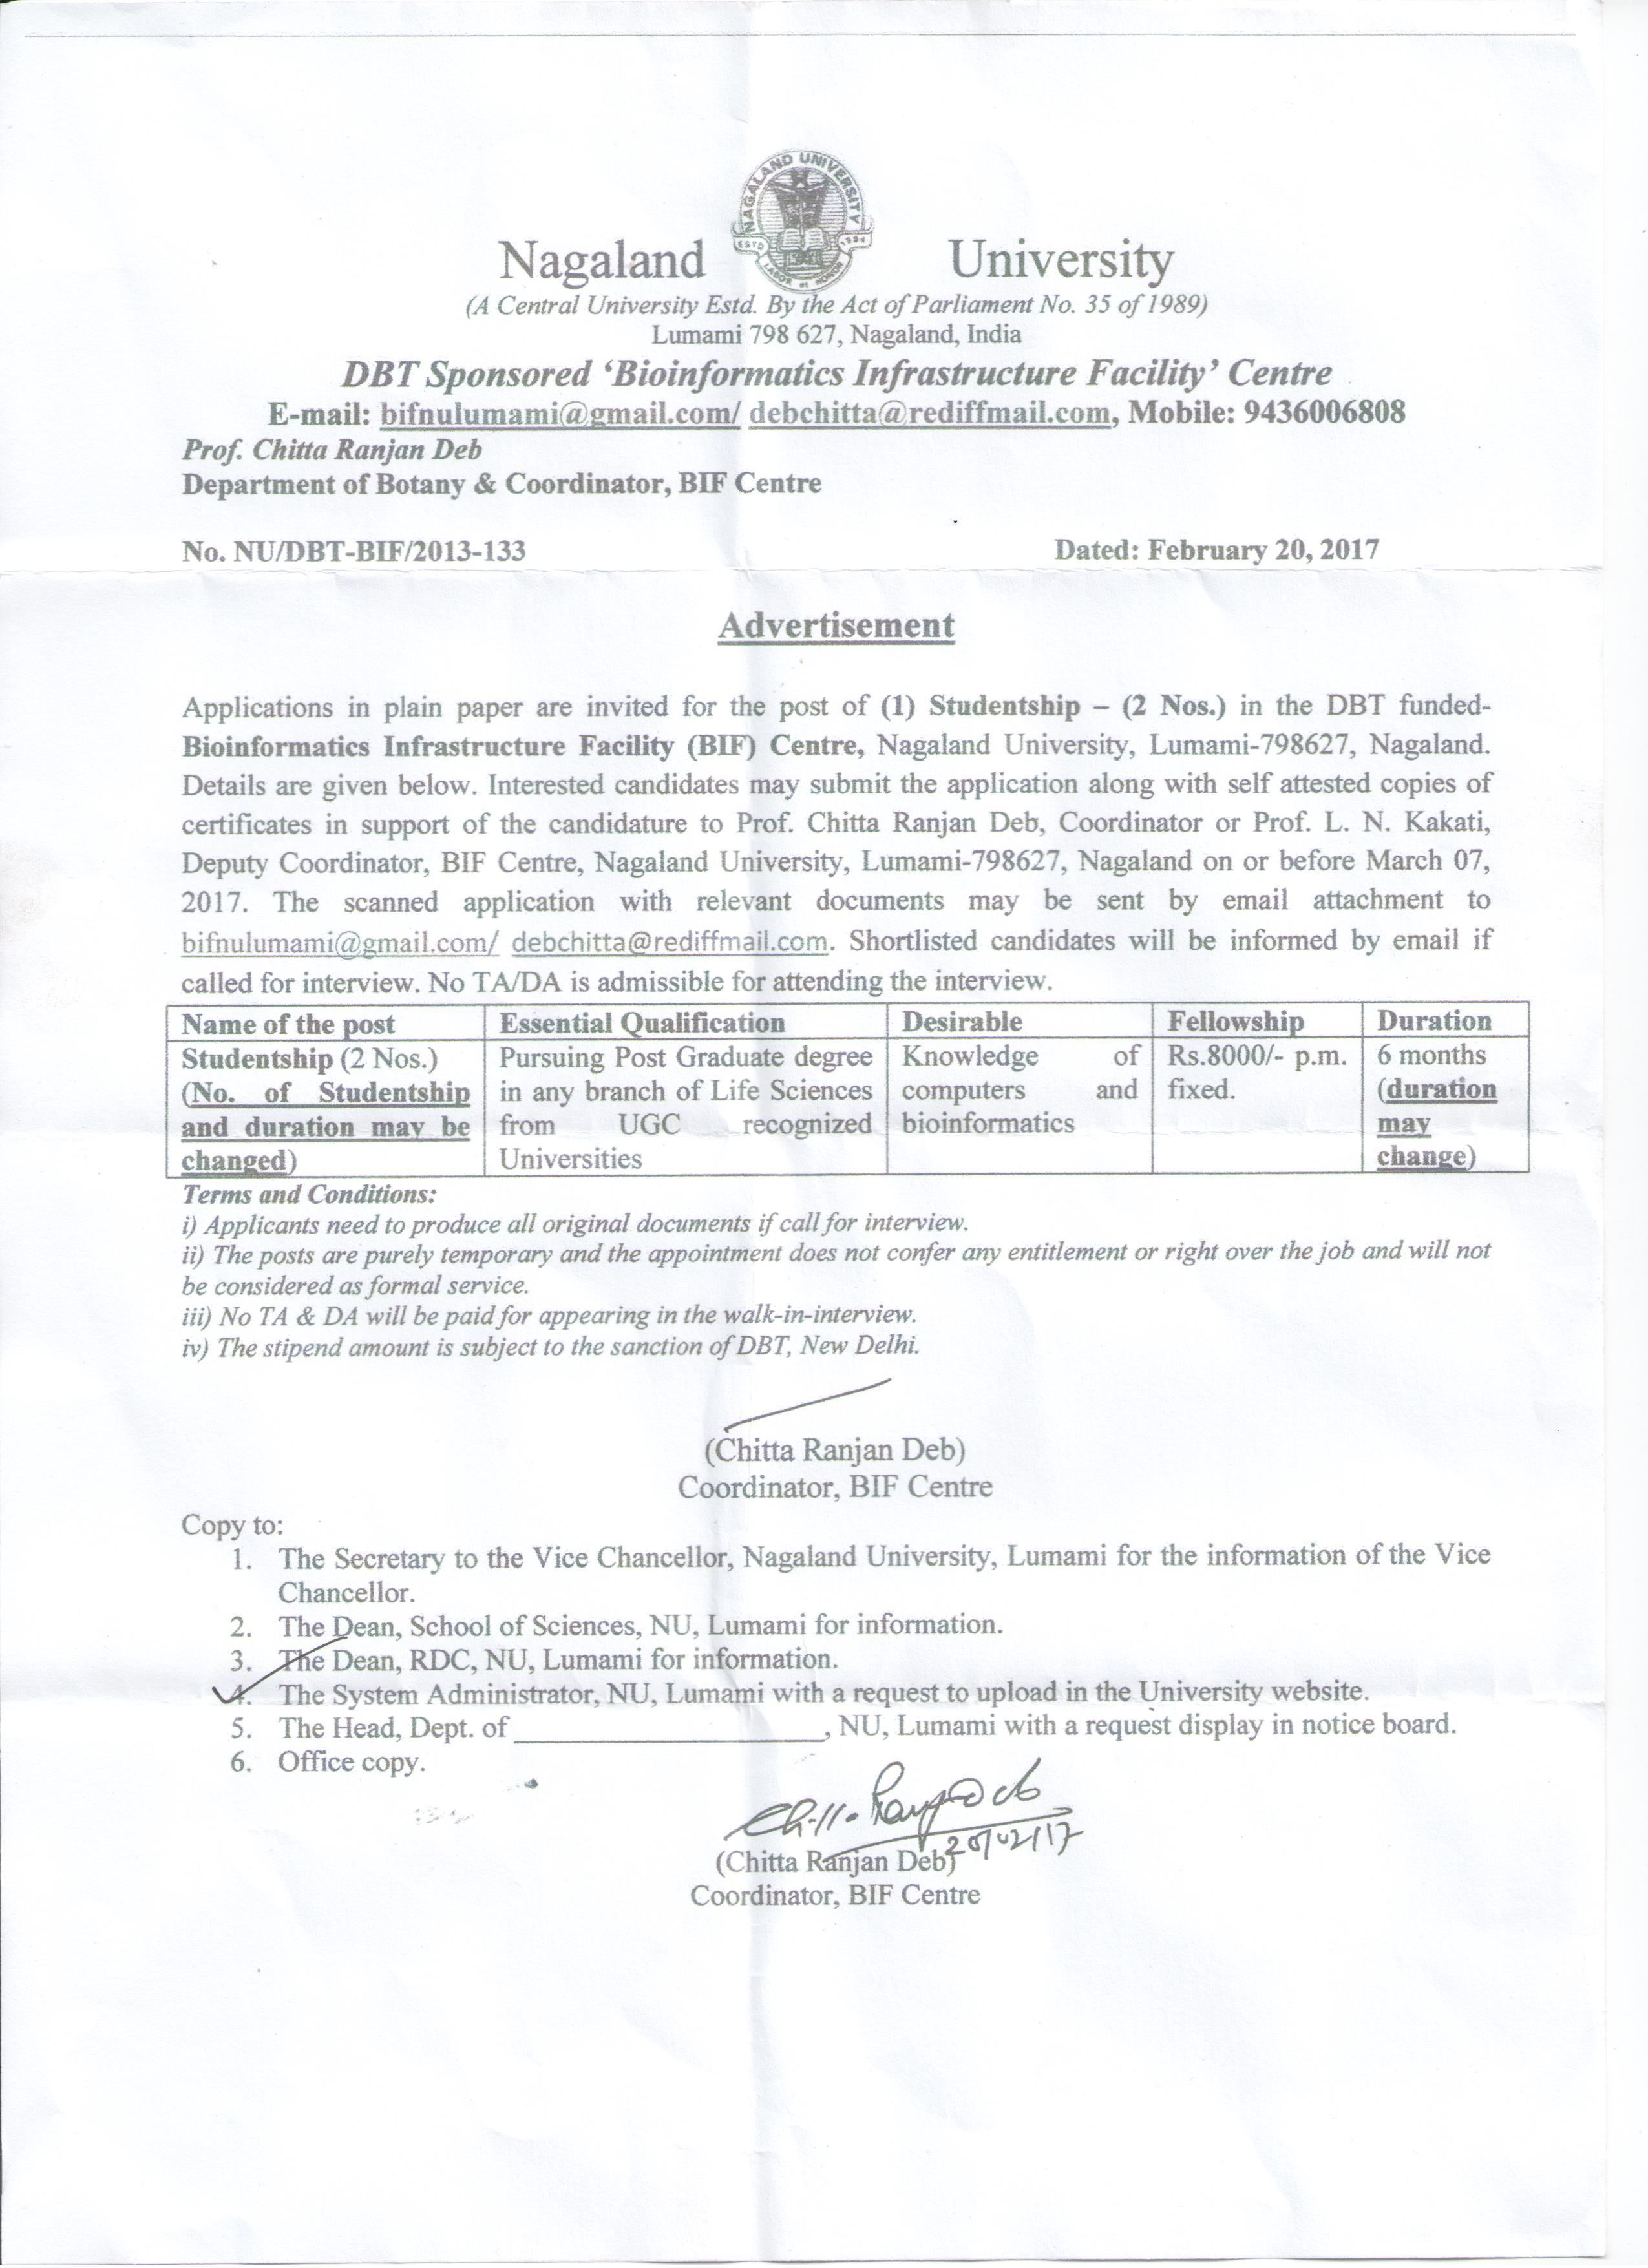 Nagaland University Recruitment 2017 Apply Online 02 Studentship – Recruitment Request Form